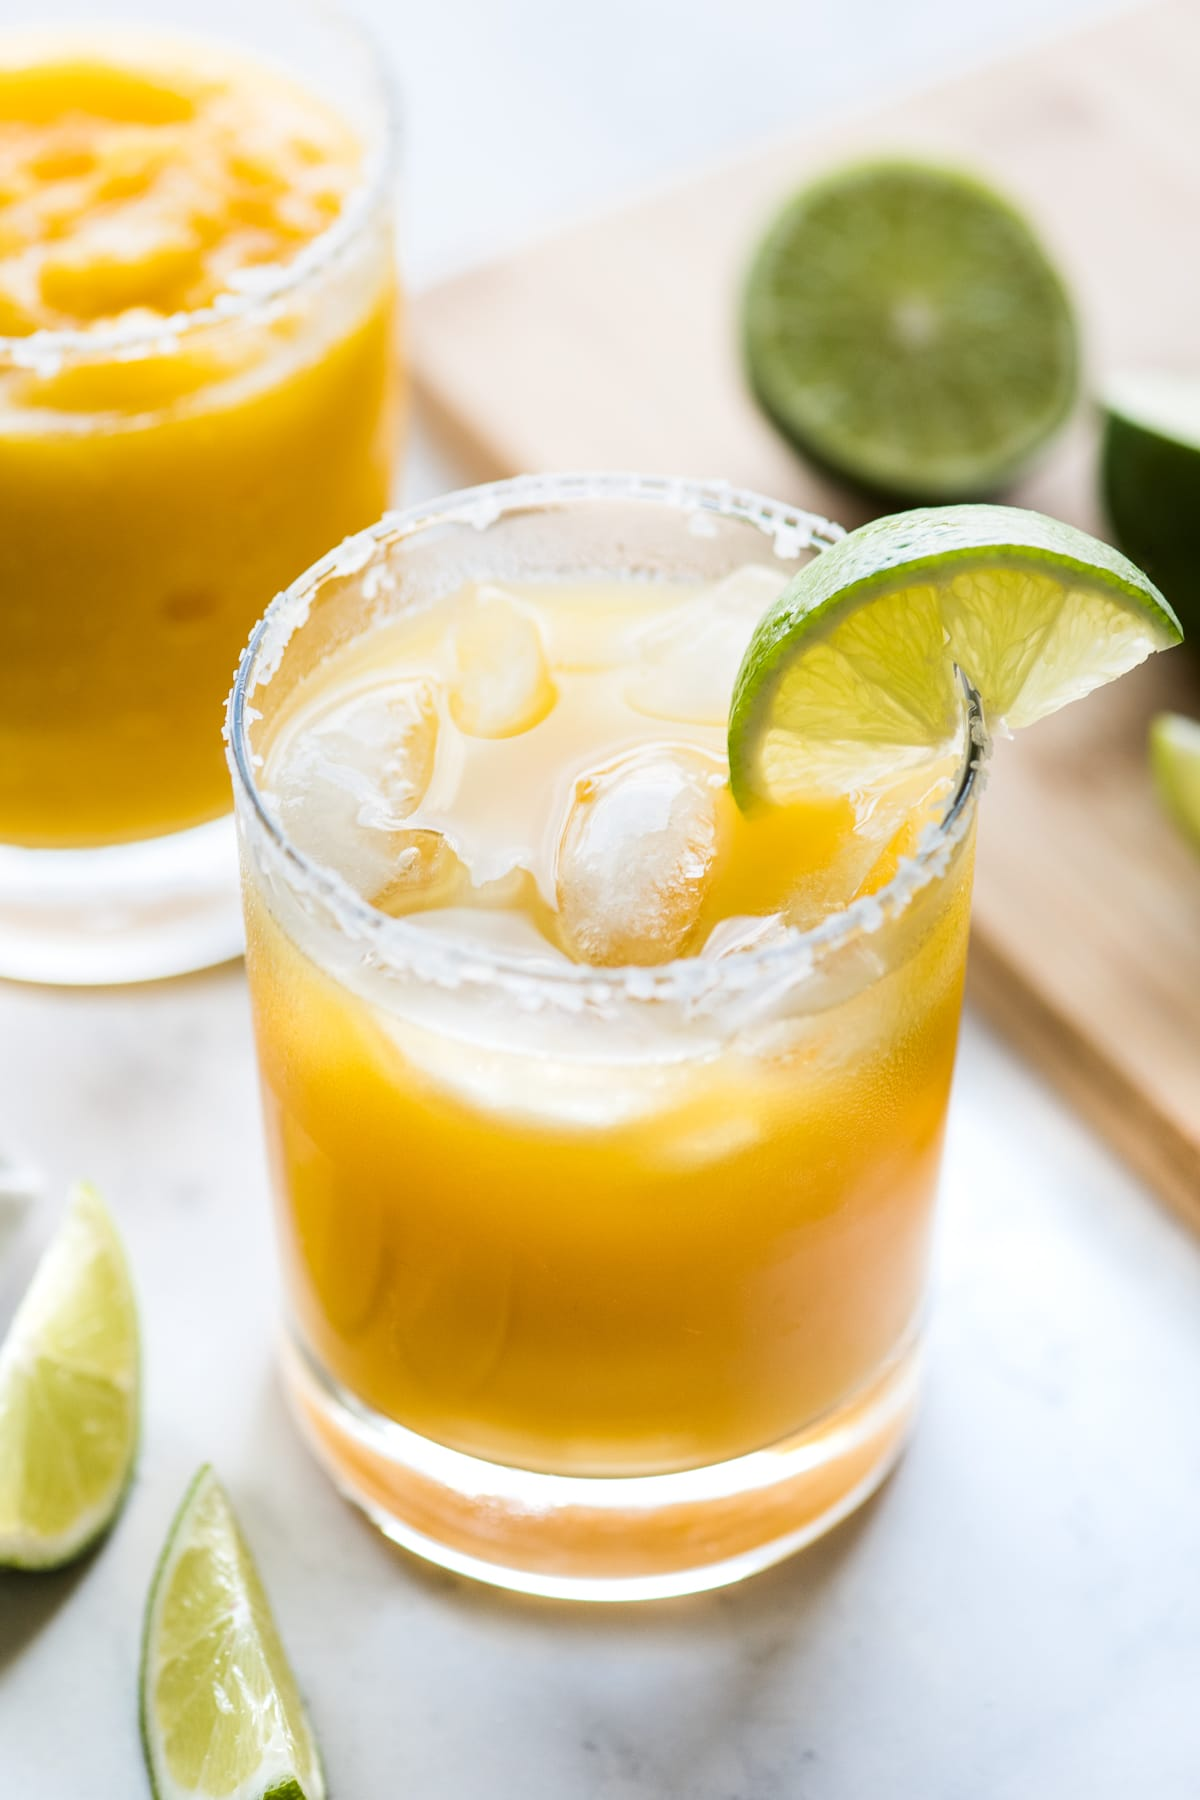 A mango margarita on the rocks with a lime wedge